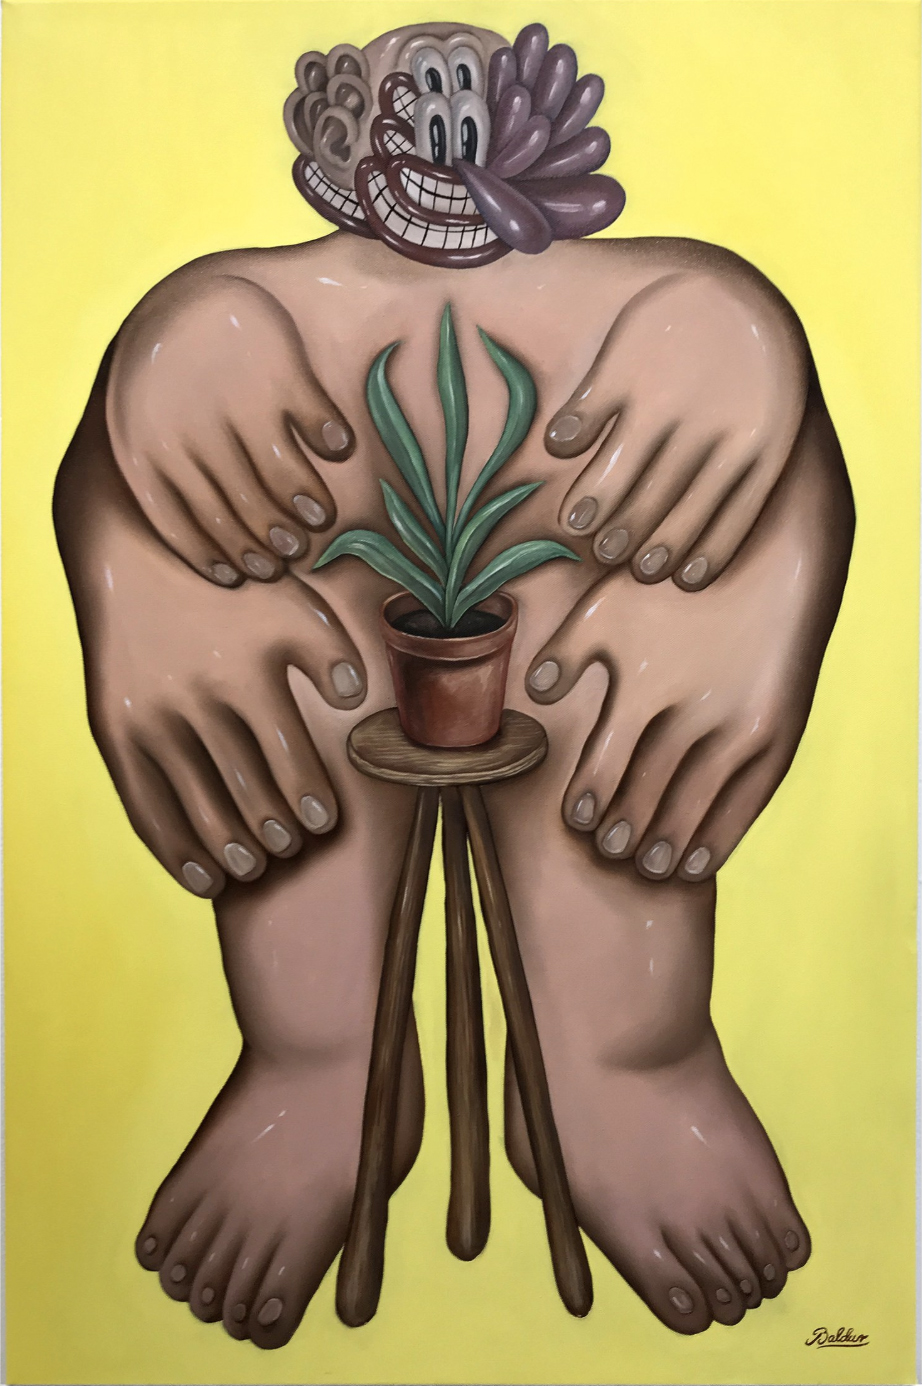 The Gardener(The Planter)  24x36, Oil on Canvas 2018